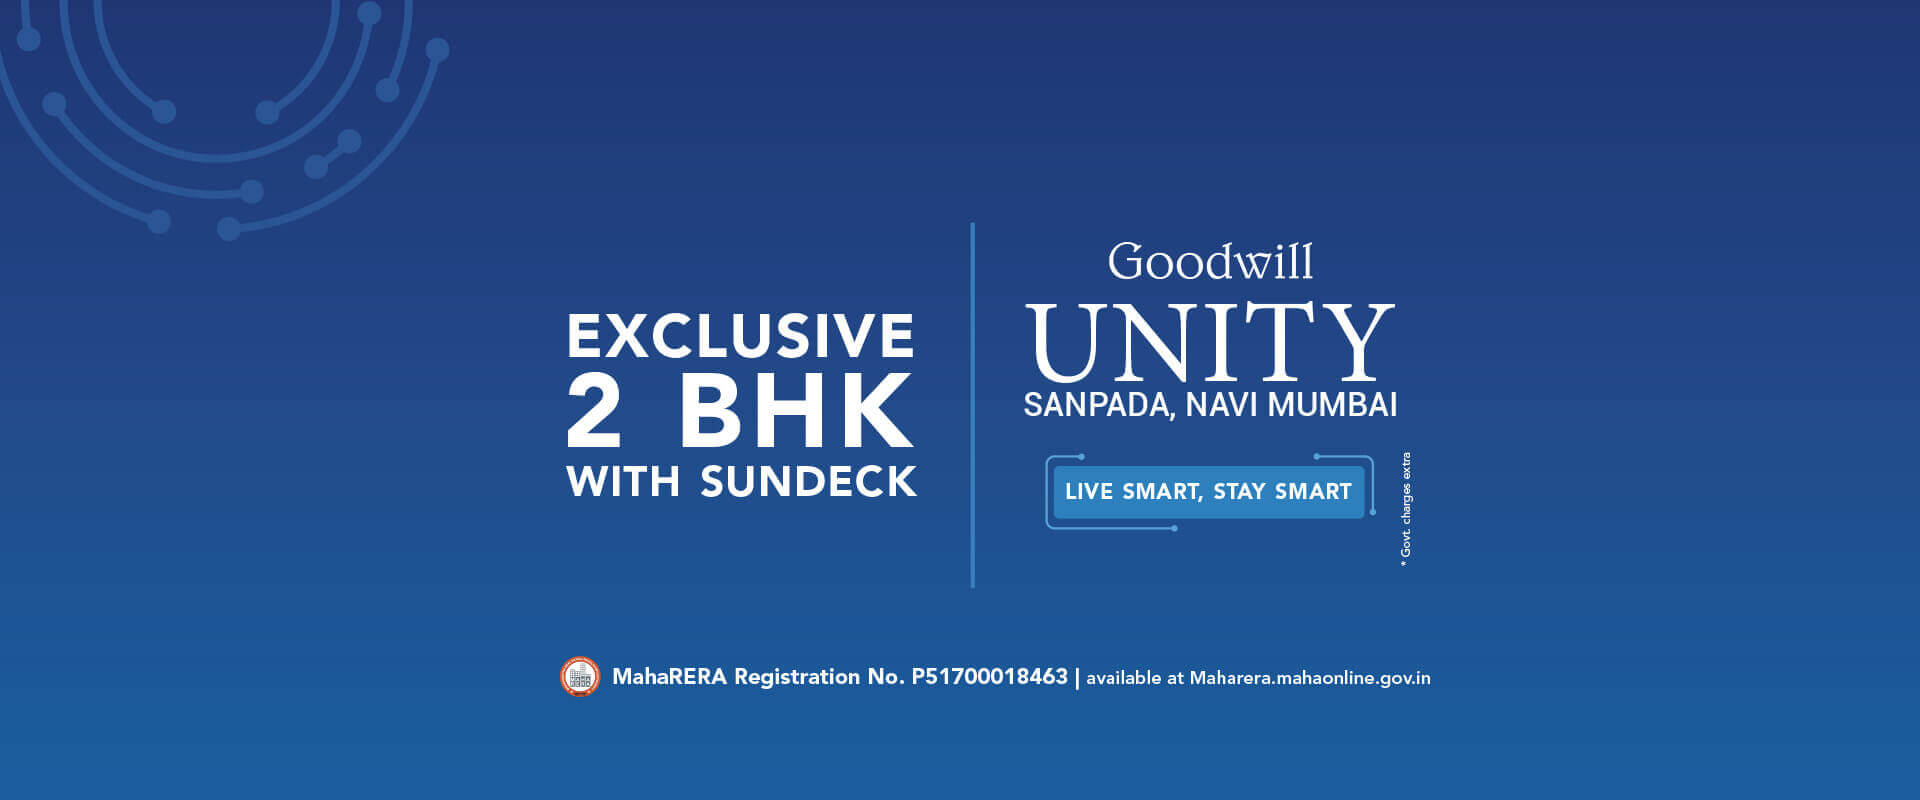 Goodwill Unity 2 BHK with sundeck